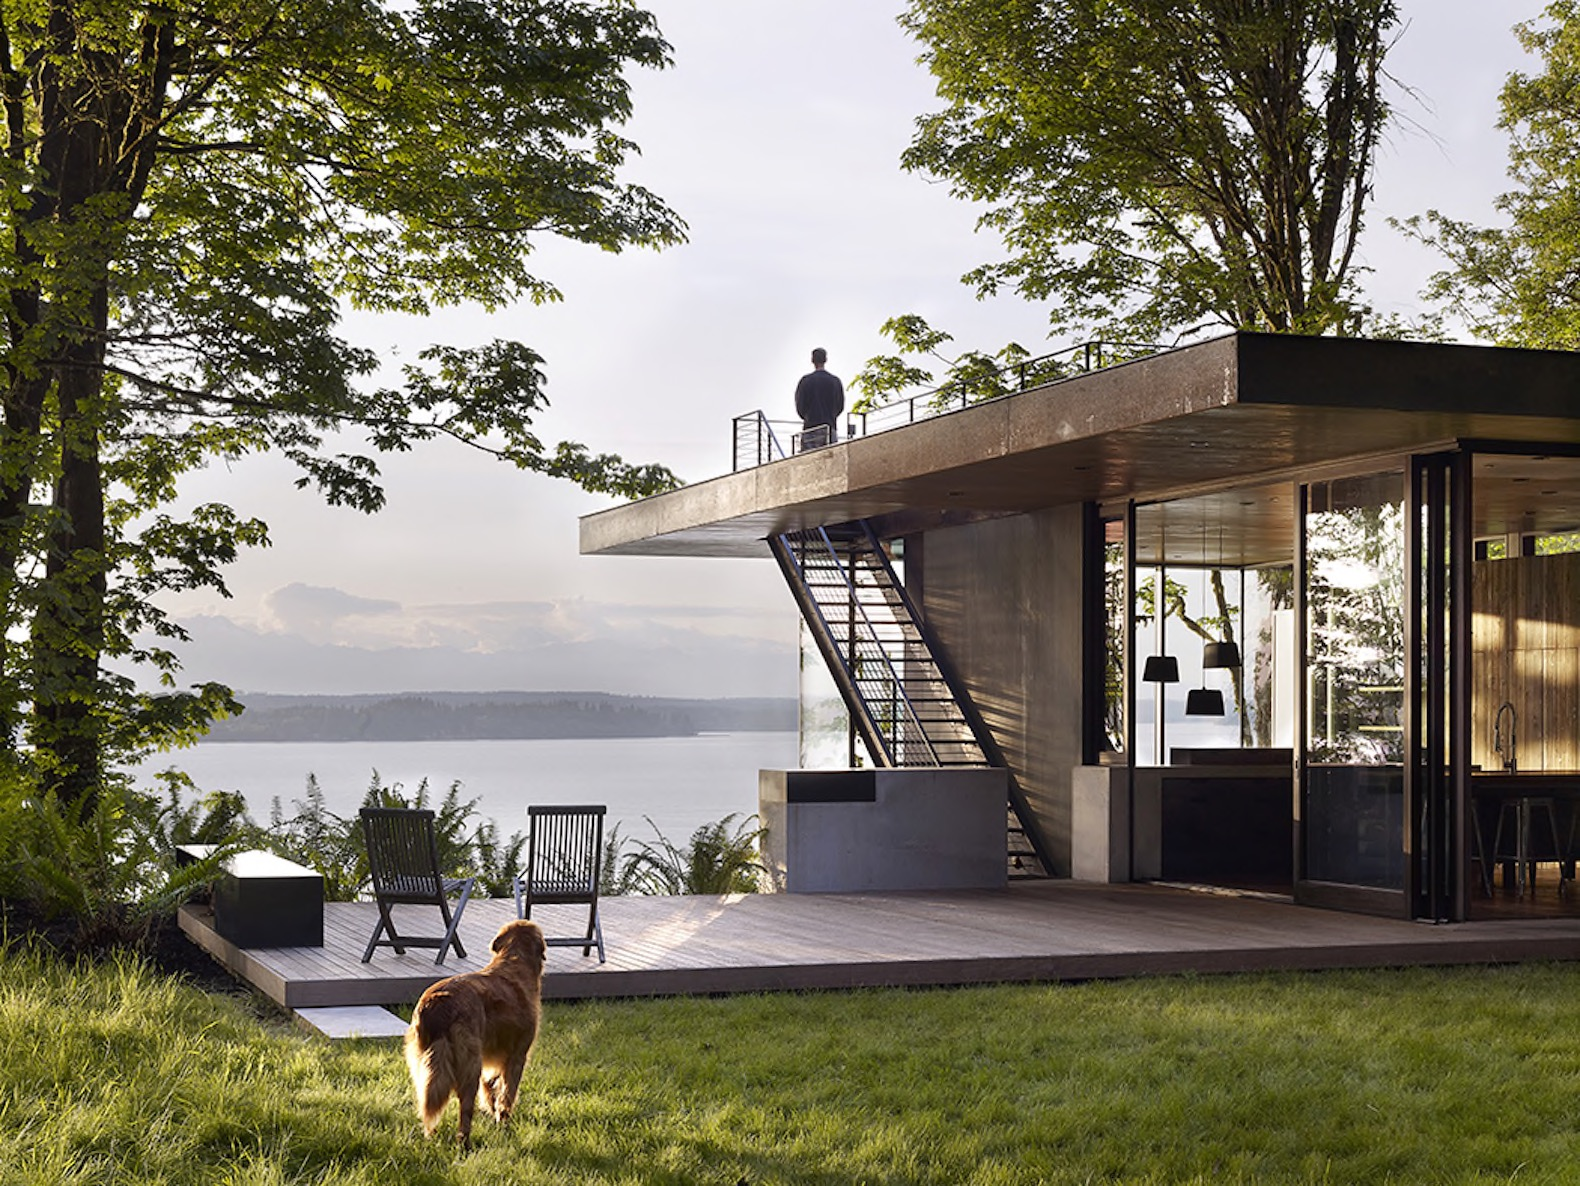 Modern low-maintenance cabin is a seamless extension of the Puget Sound landscape